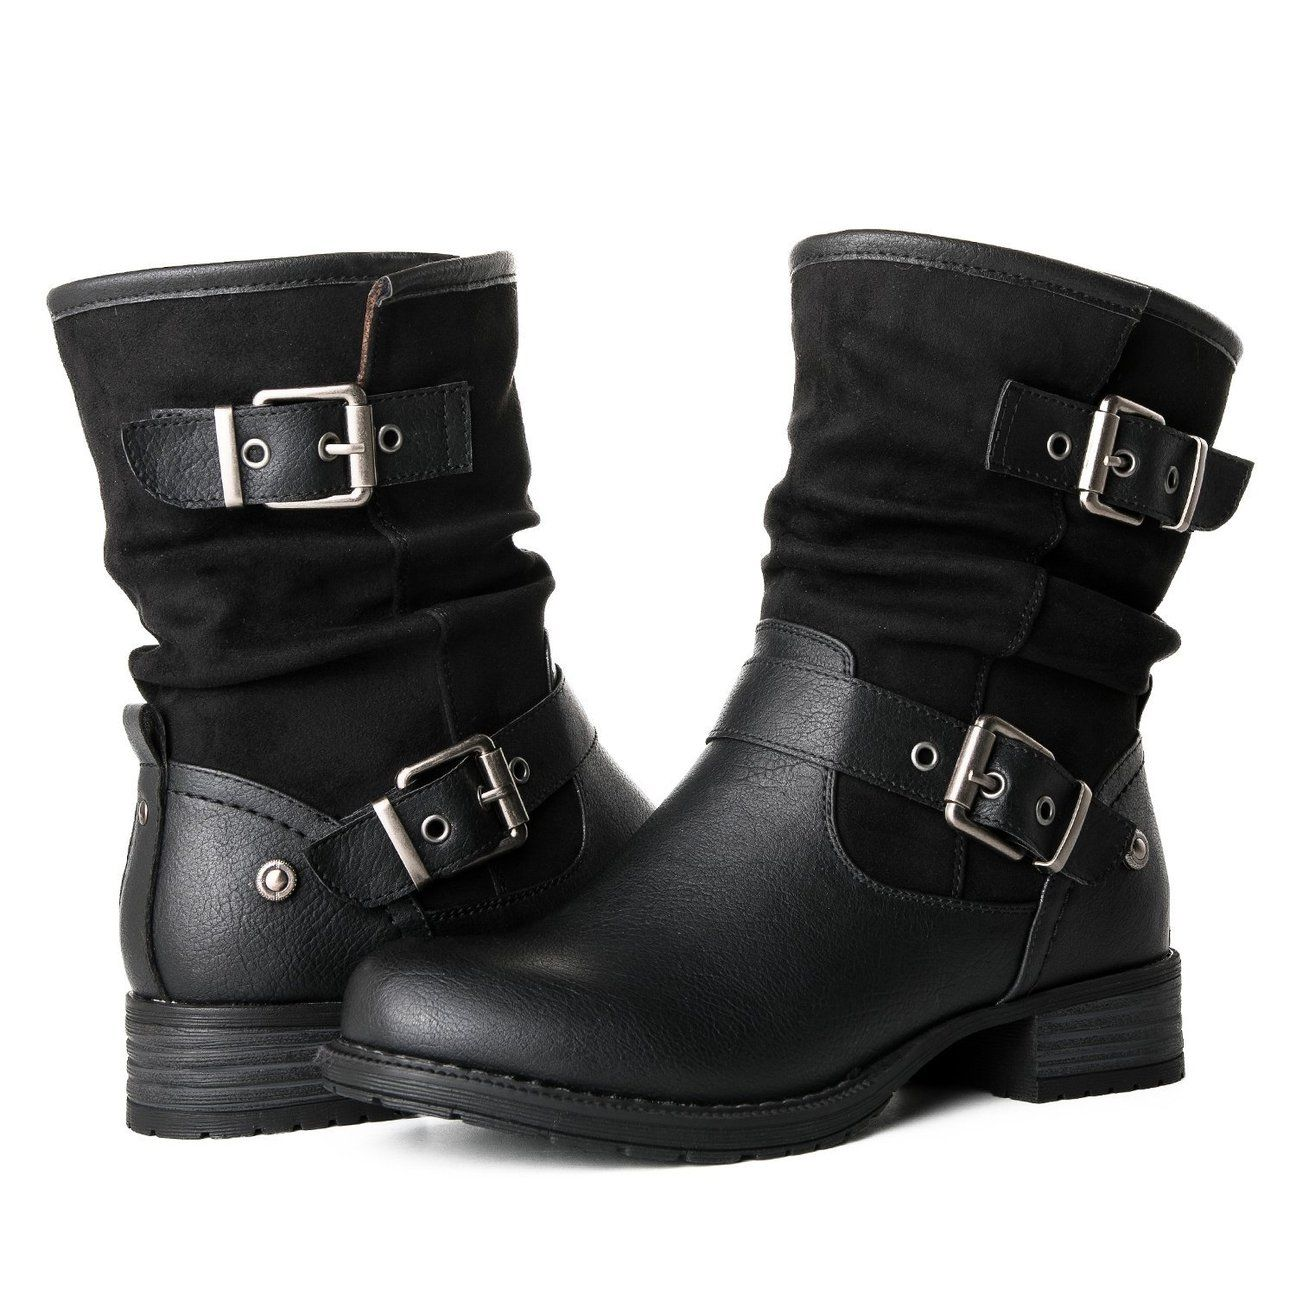 c8e39354a Women's Biker Ankle Boots in 2019 | ozzies shit | Fashion boots ...